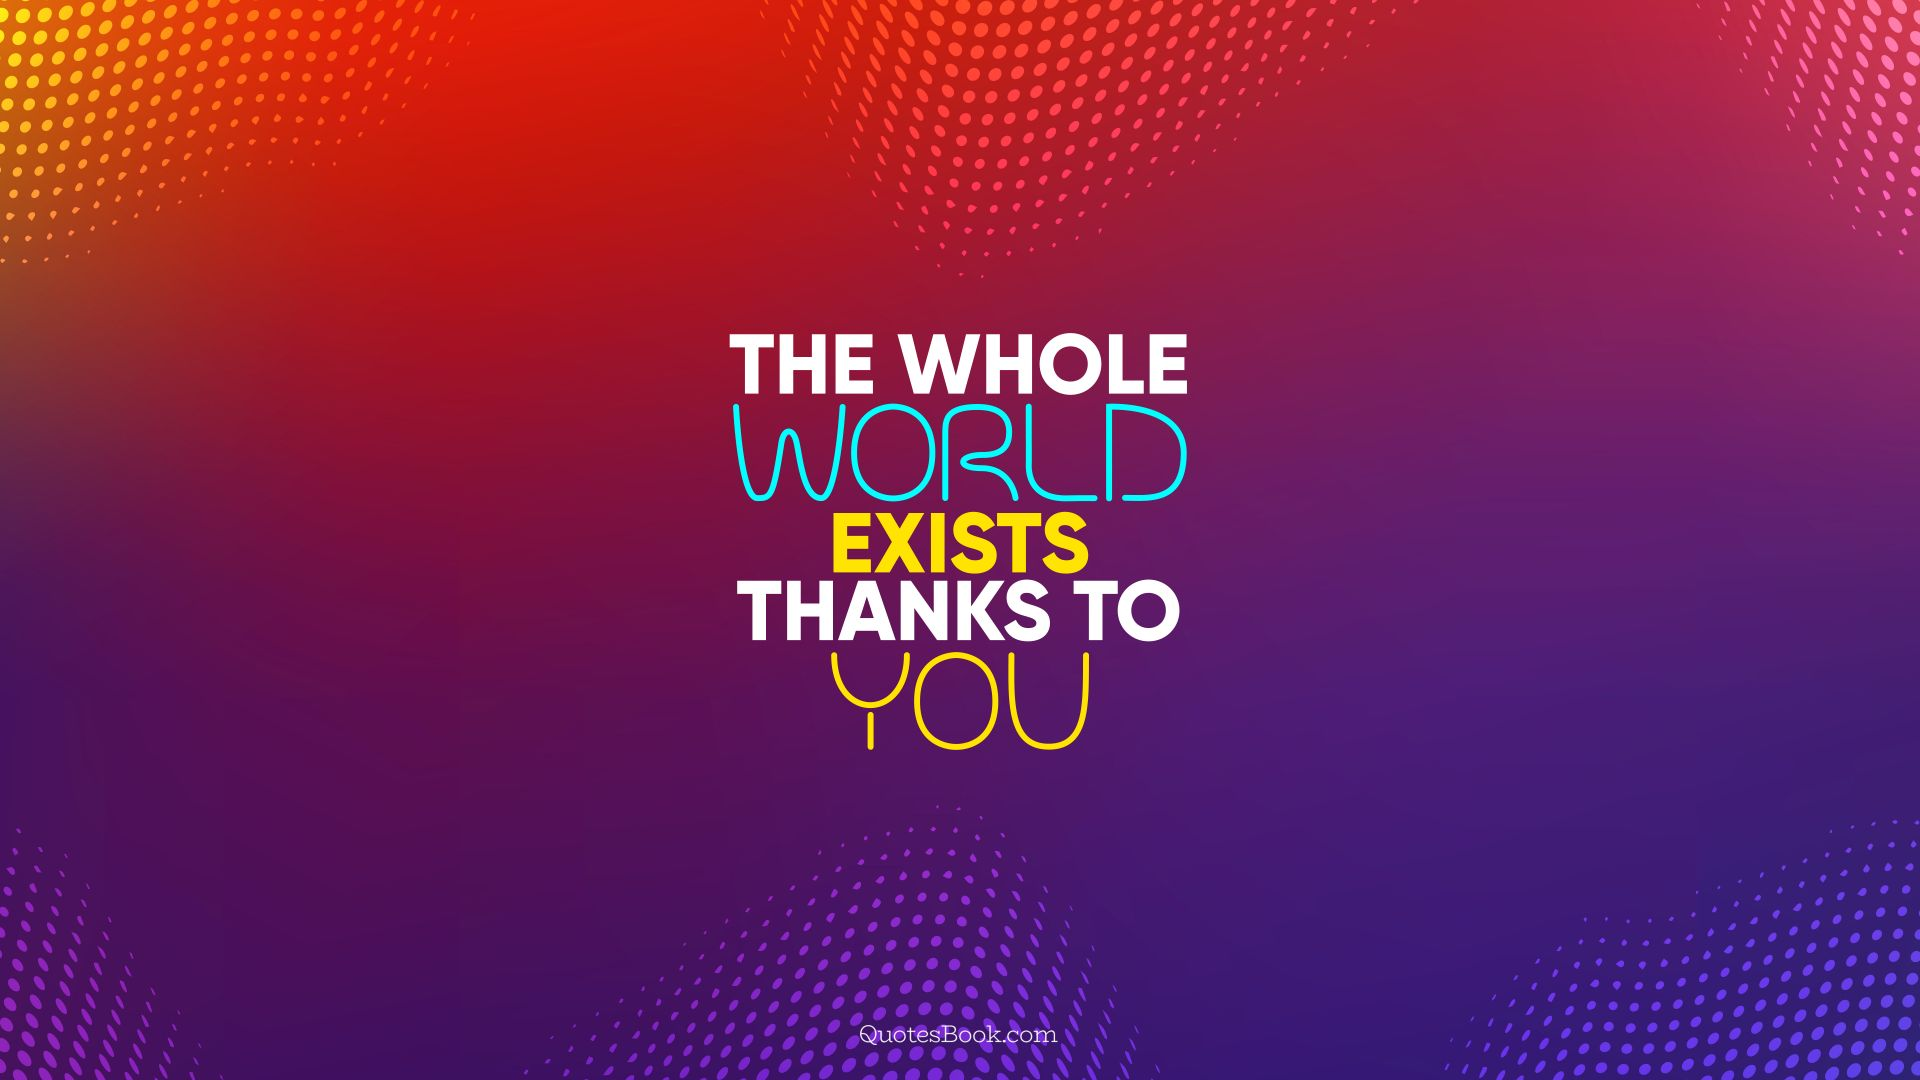 The whole world exists thanks to you. - Quote by QuotesBook